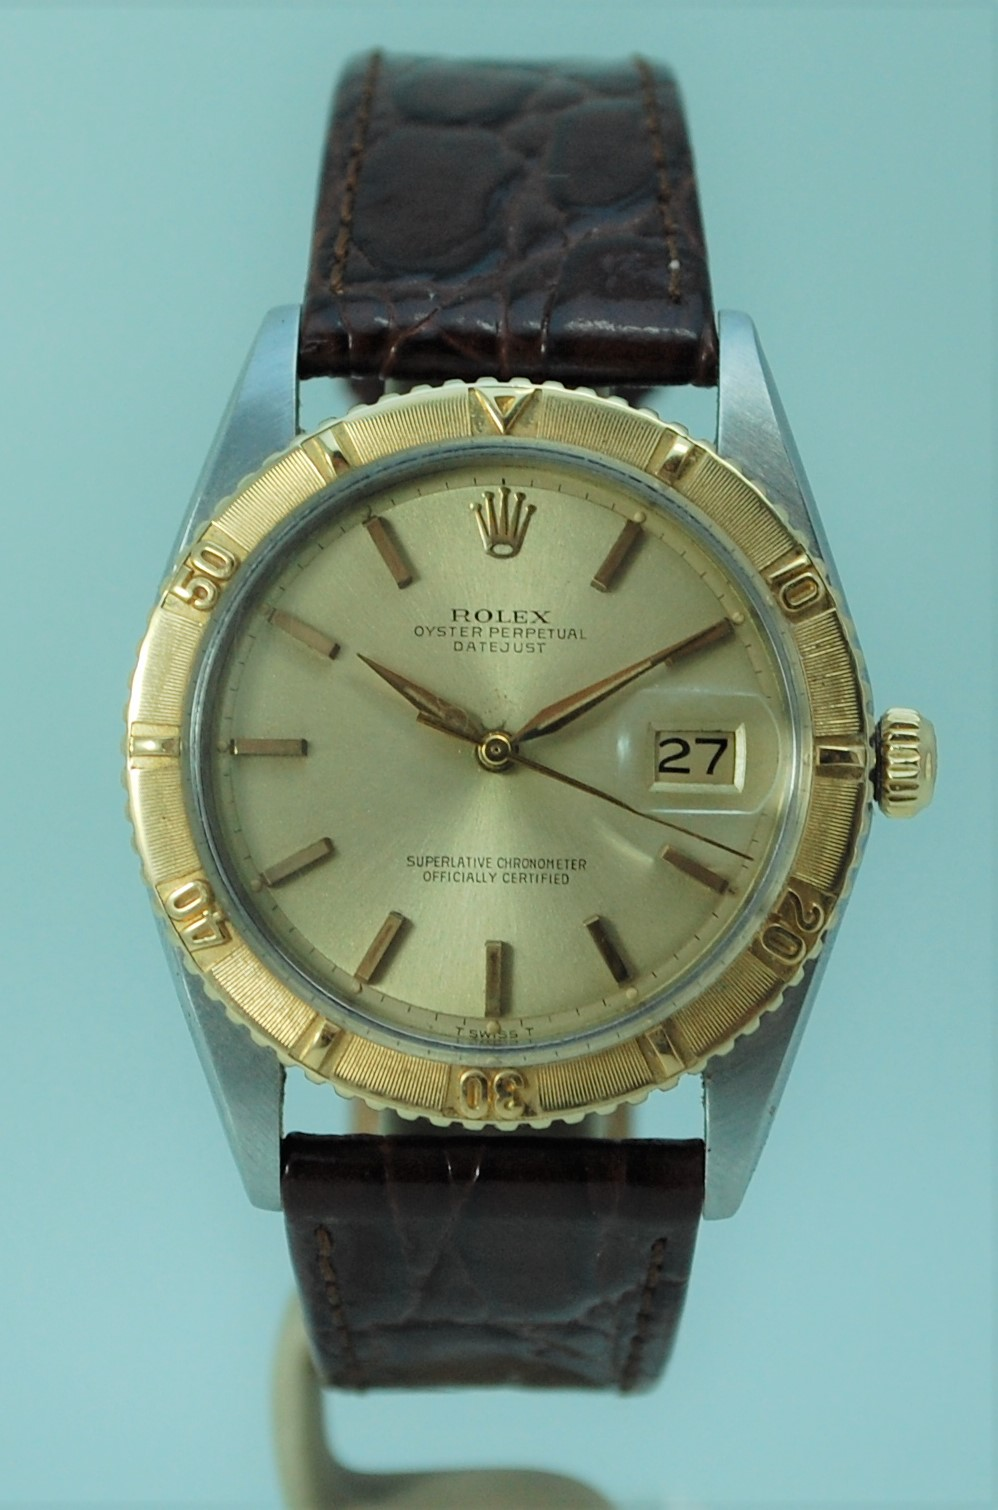 Where is the serial number on a rolex oyster perpetual datejust